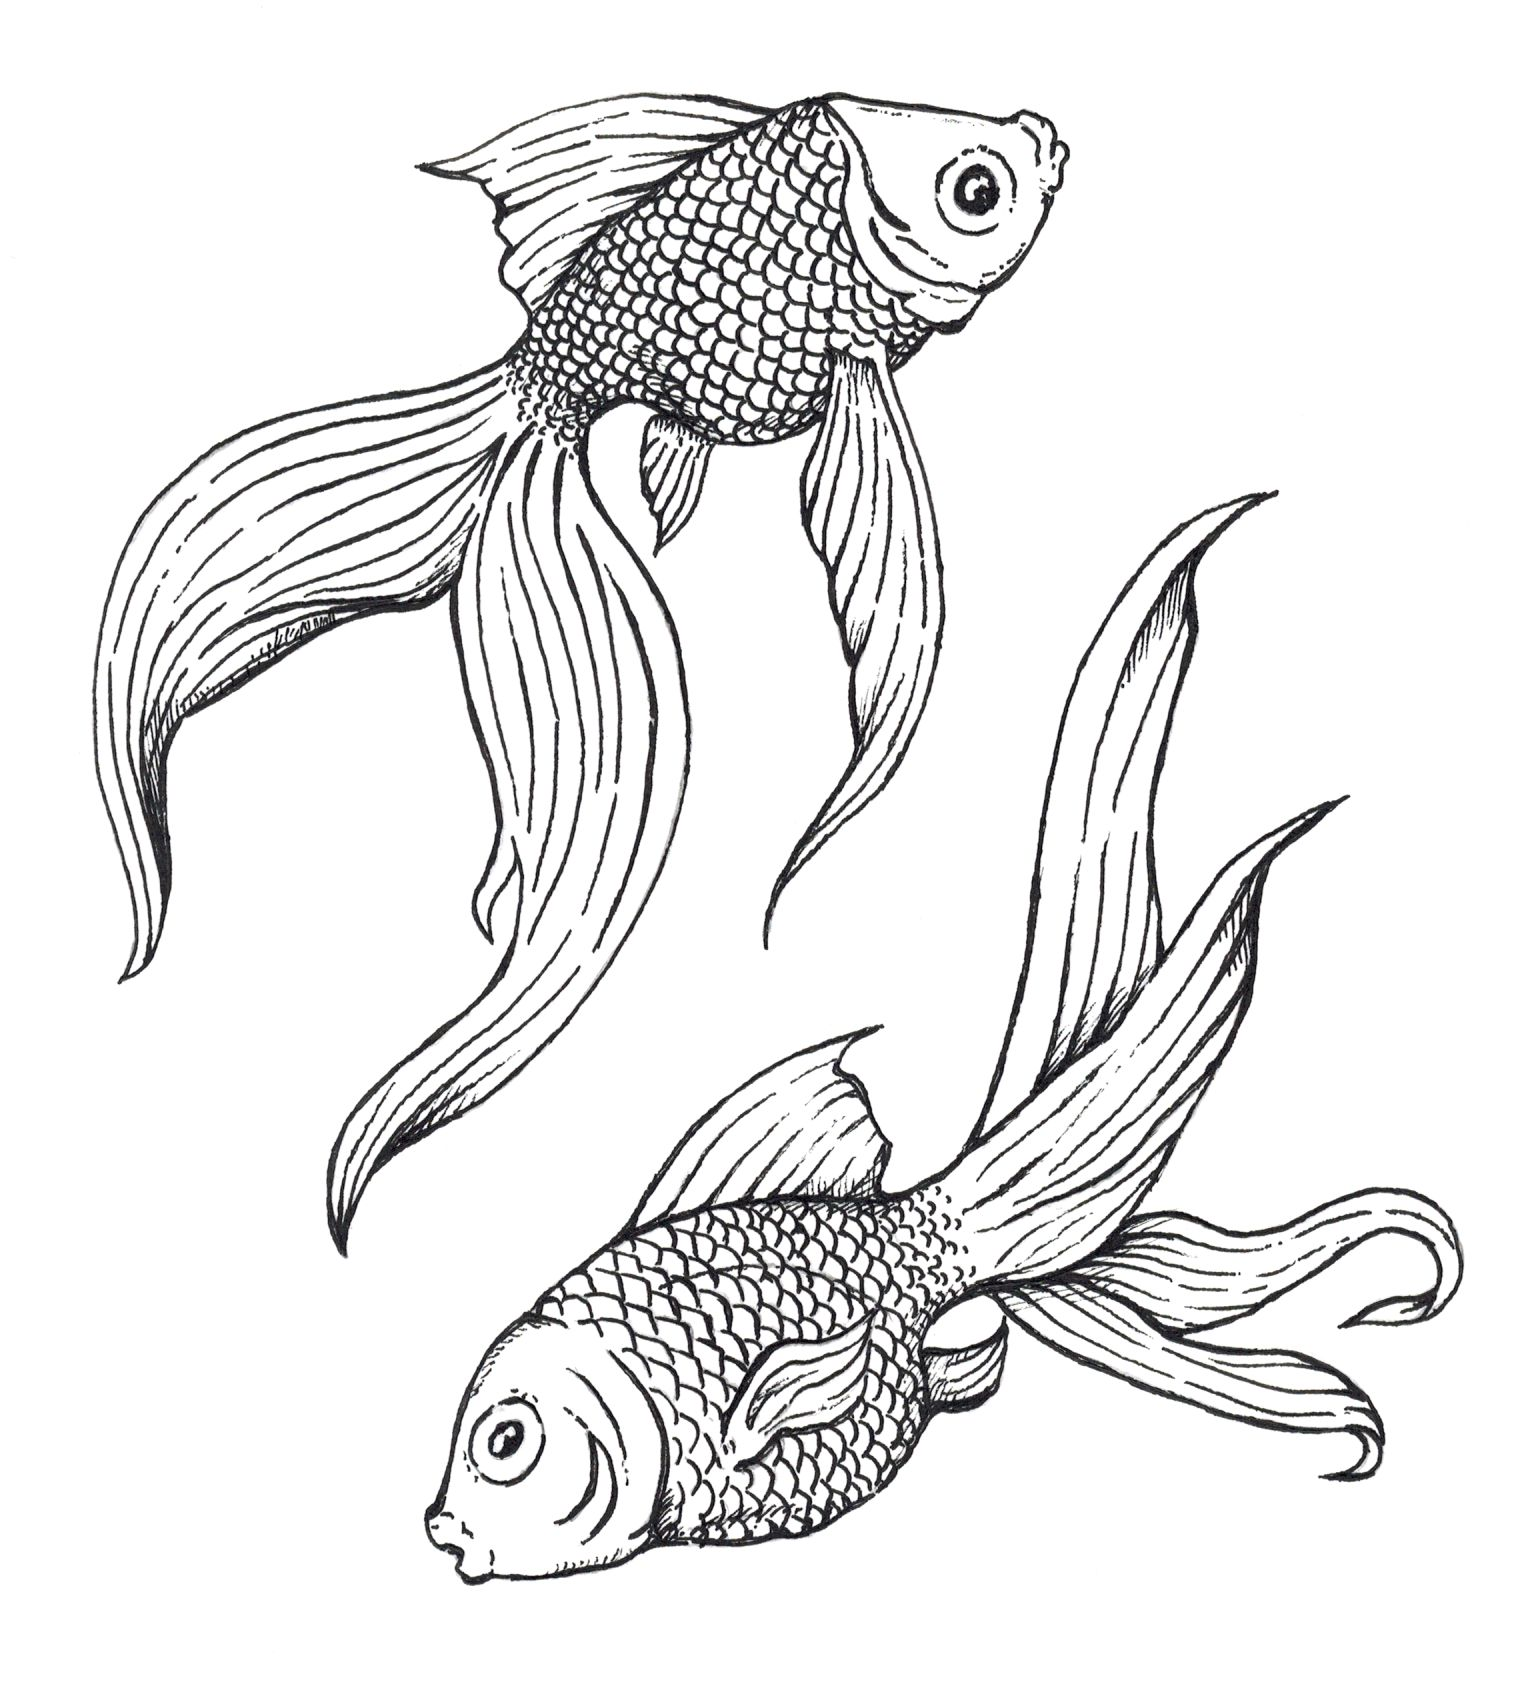 1532x1688 Pen And Ink Drawings Of Fish Cool Pen And Ink Drawings